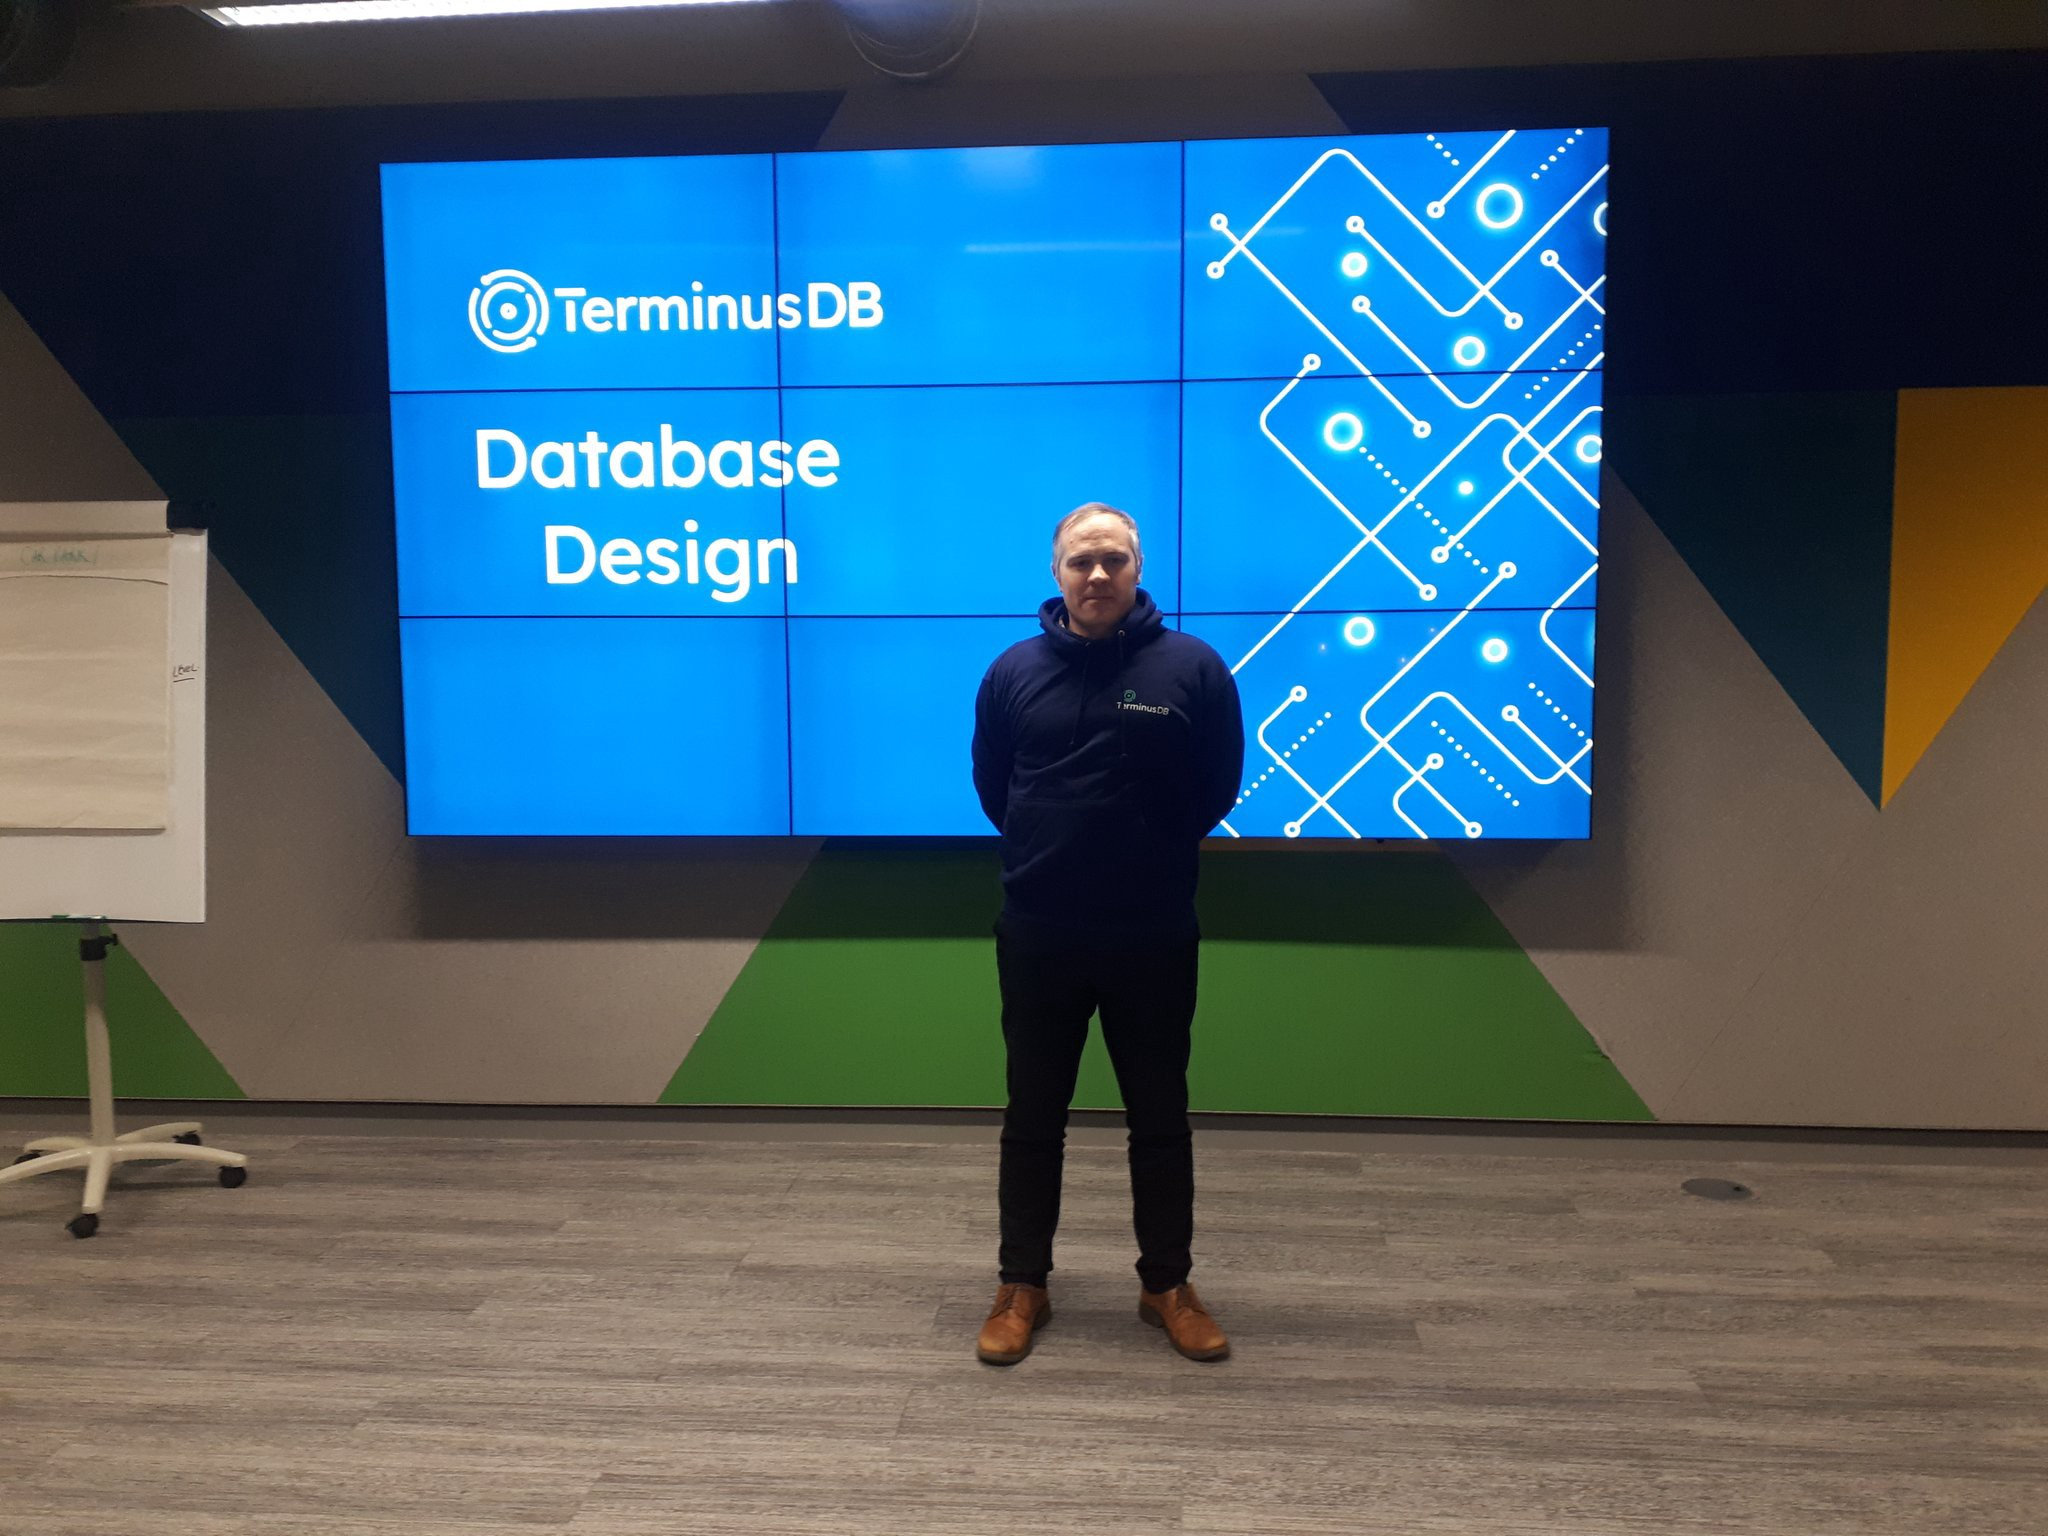 TerminusDB community arrived in London